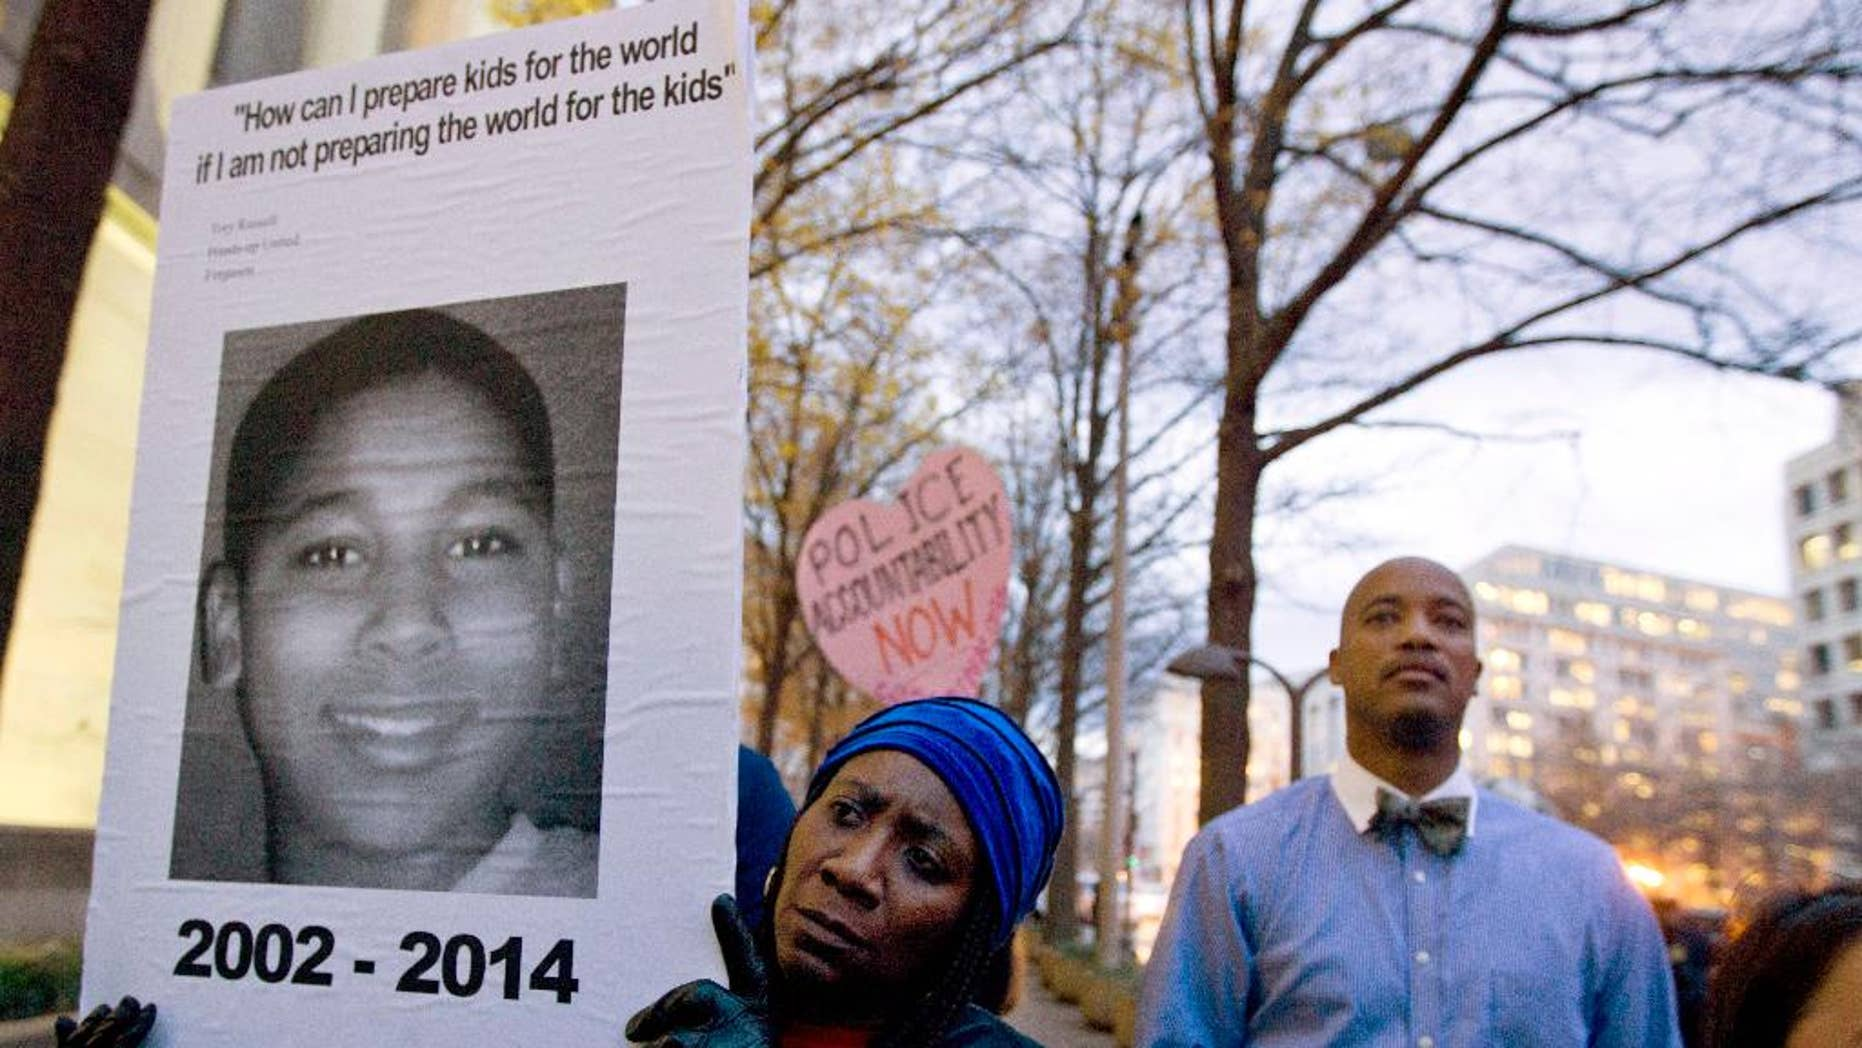 FILE - In this Dec. 1, 2014 file photo, Tomiko Shine holds up a picture of Tamir Rice during a protest in Washington. A 911 dispatcher who took a call that led to a white police officer's fatal shooting of Rice, a 12-year-old black boy who'd been playing with a pellet gun outside a Cleveland recreation center, has been suspended for eight days. Police Chief Calvin Williams stated in a disciplinary letter Constance Hollinger violated protocol. (AP Photo/Jose Luis Magana, File)